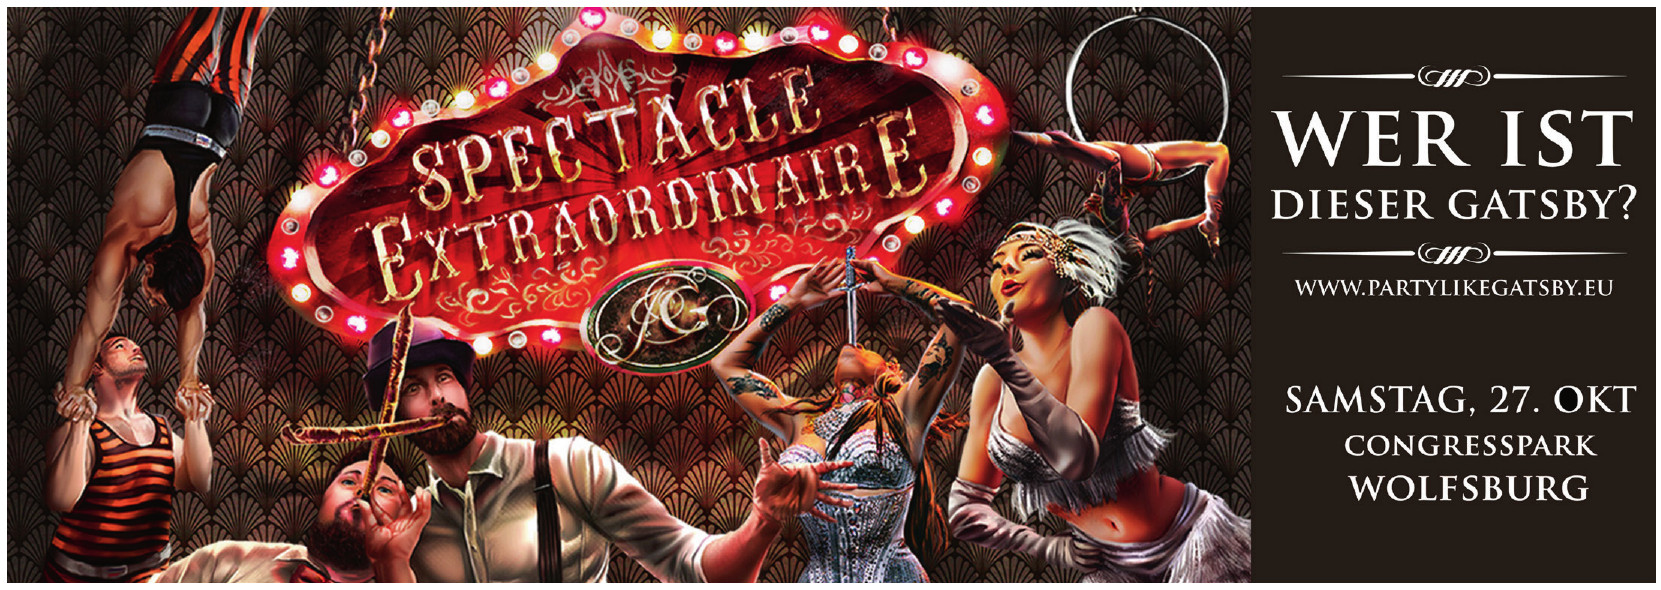 Party like Gatsby – Spectacle Extraordinaire